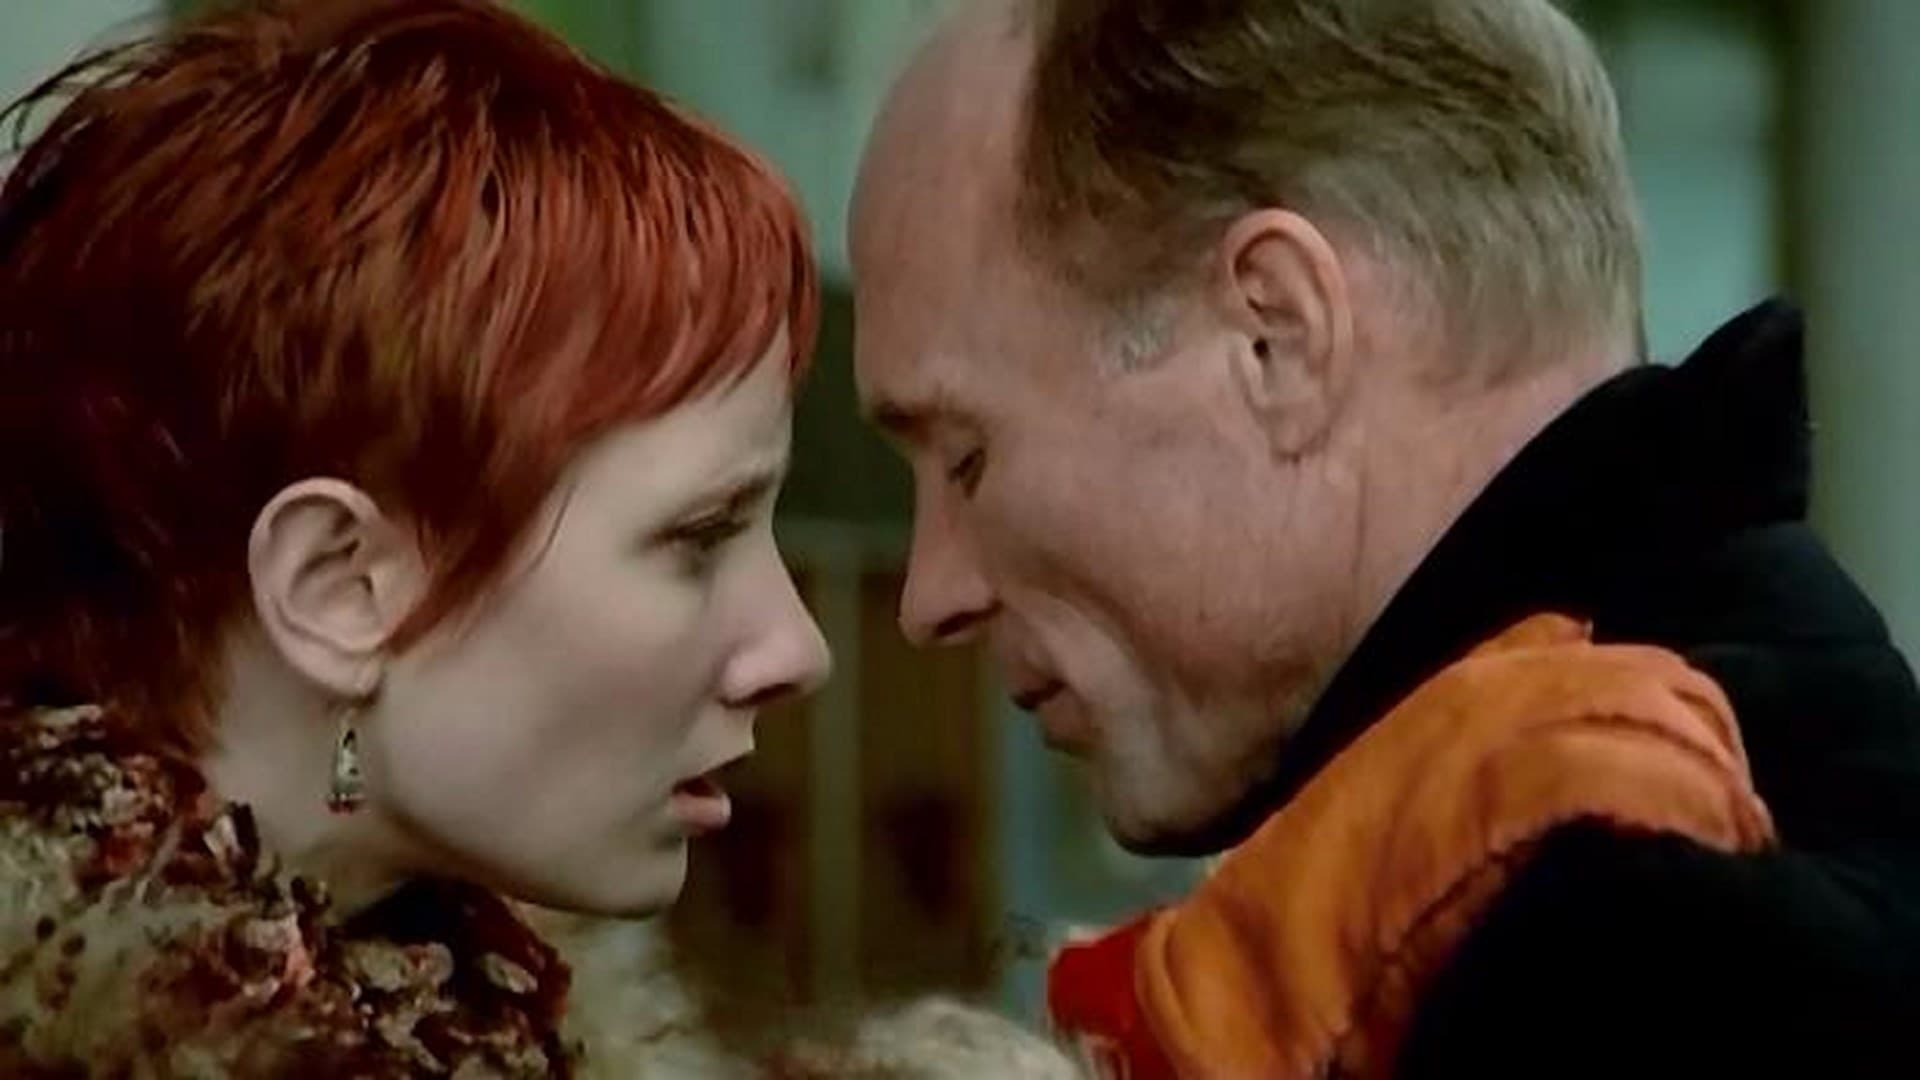 Ed Harris as a priest struggling with temptations of a woman (Anne Heche) in The Third Miracle (1999)